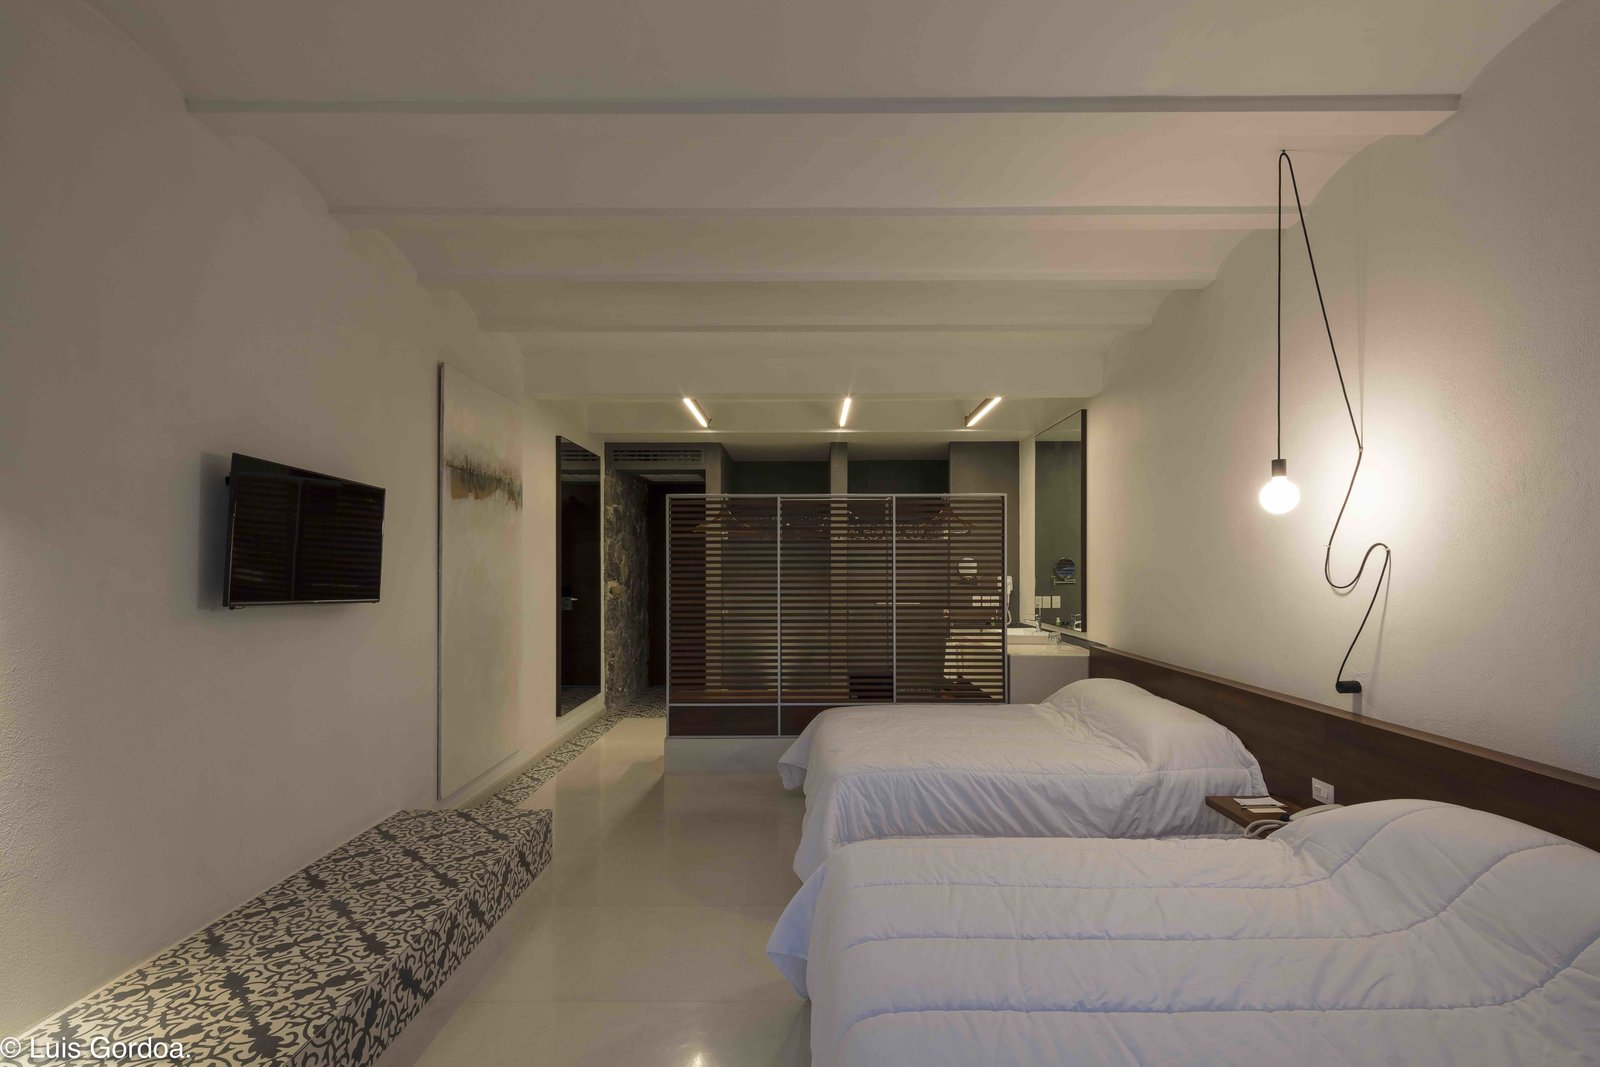 Bedroom, Pendant Lighting, and Bed  Photo 10 of 12 in A New Hotel in Morelos Combines Local Mexican Elements With Brutalist Architecture